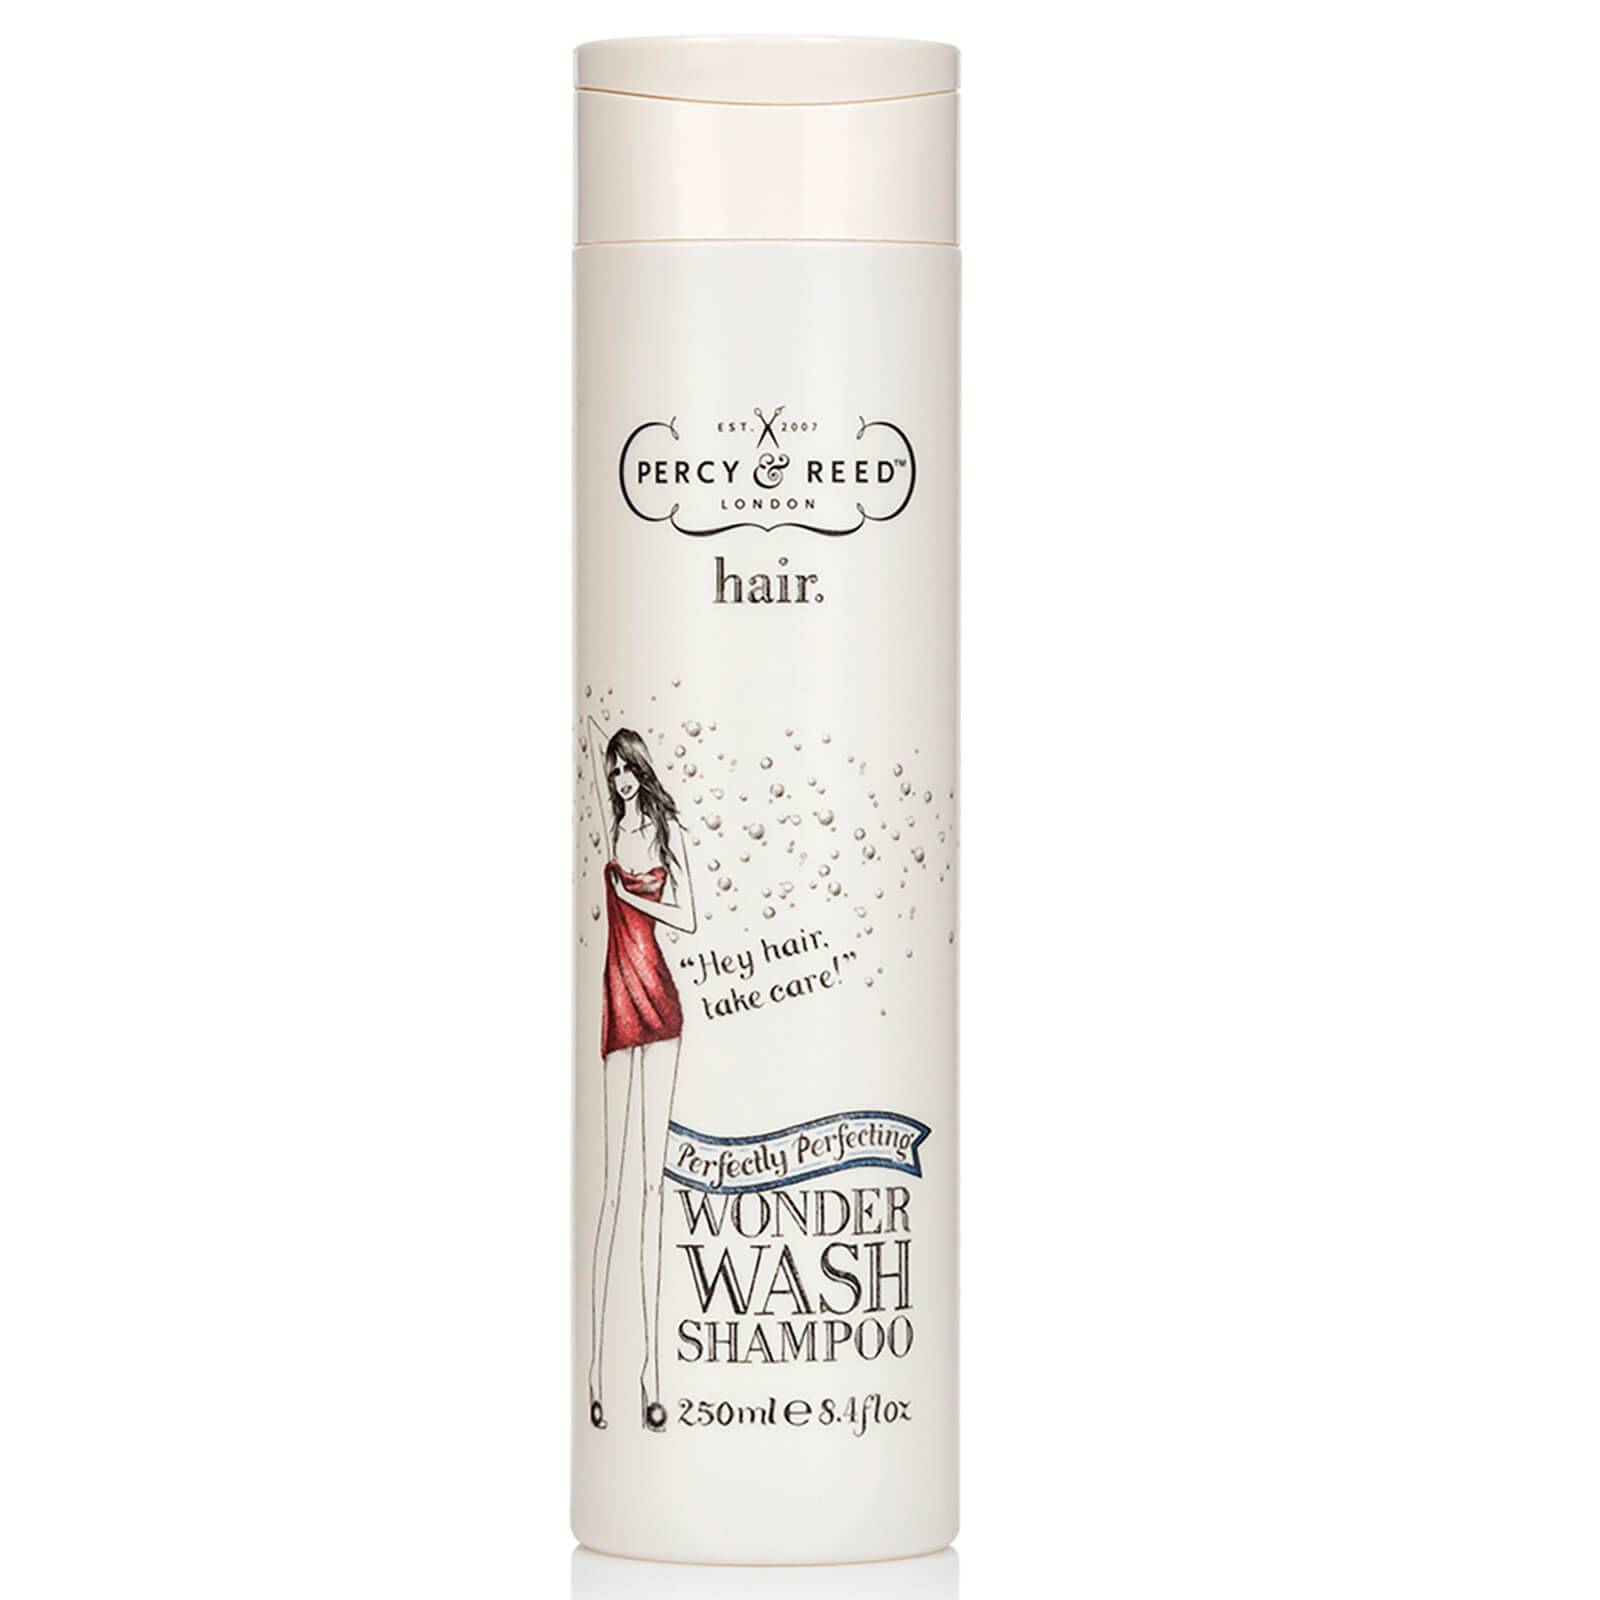 Percy & Reed Shampooing Wonder Wash Perfectly Perfecting Percy & Reed – 250ml